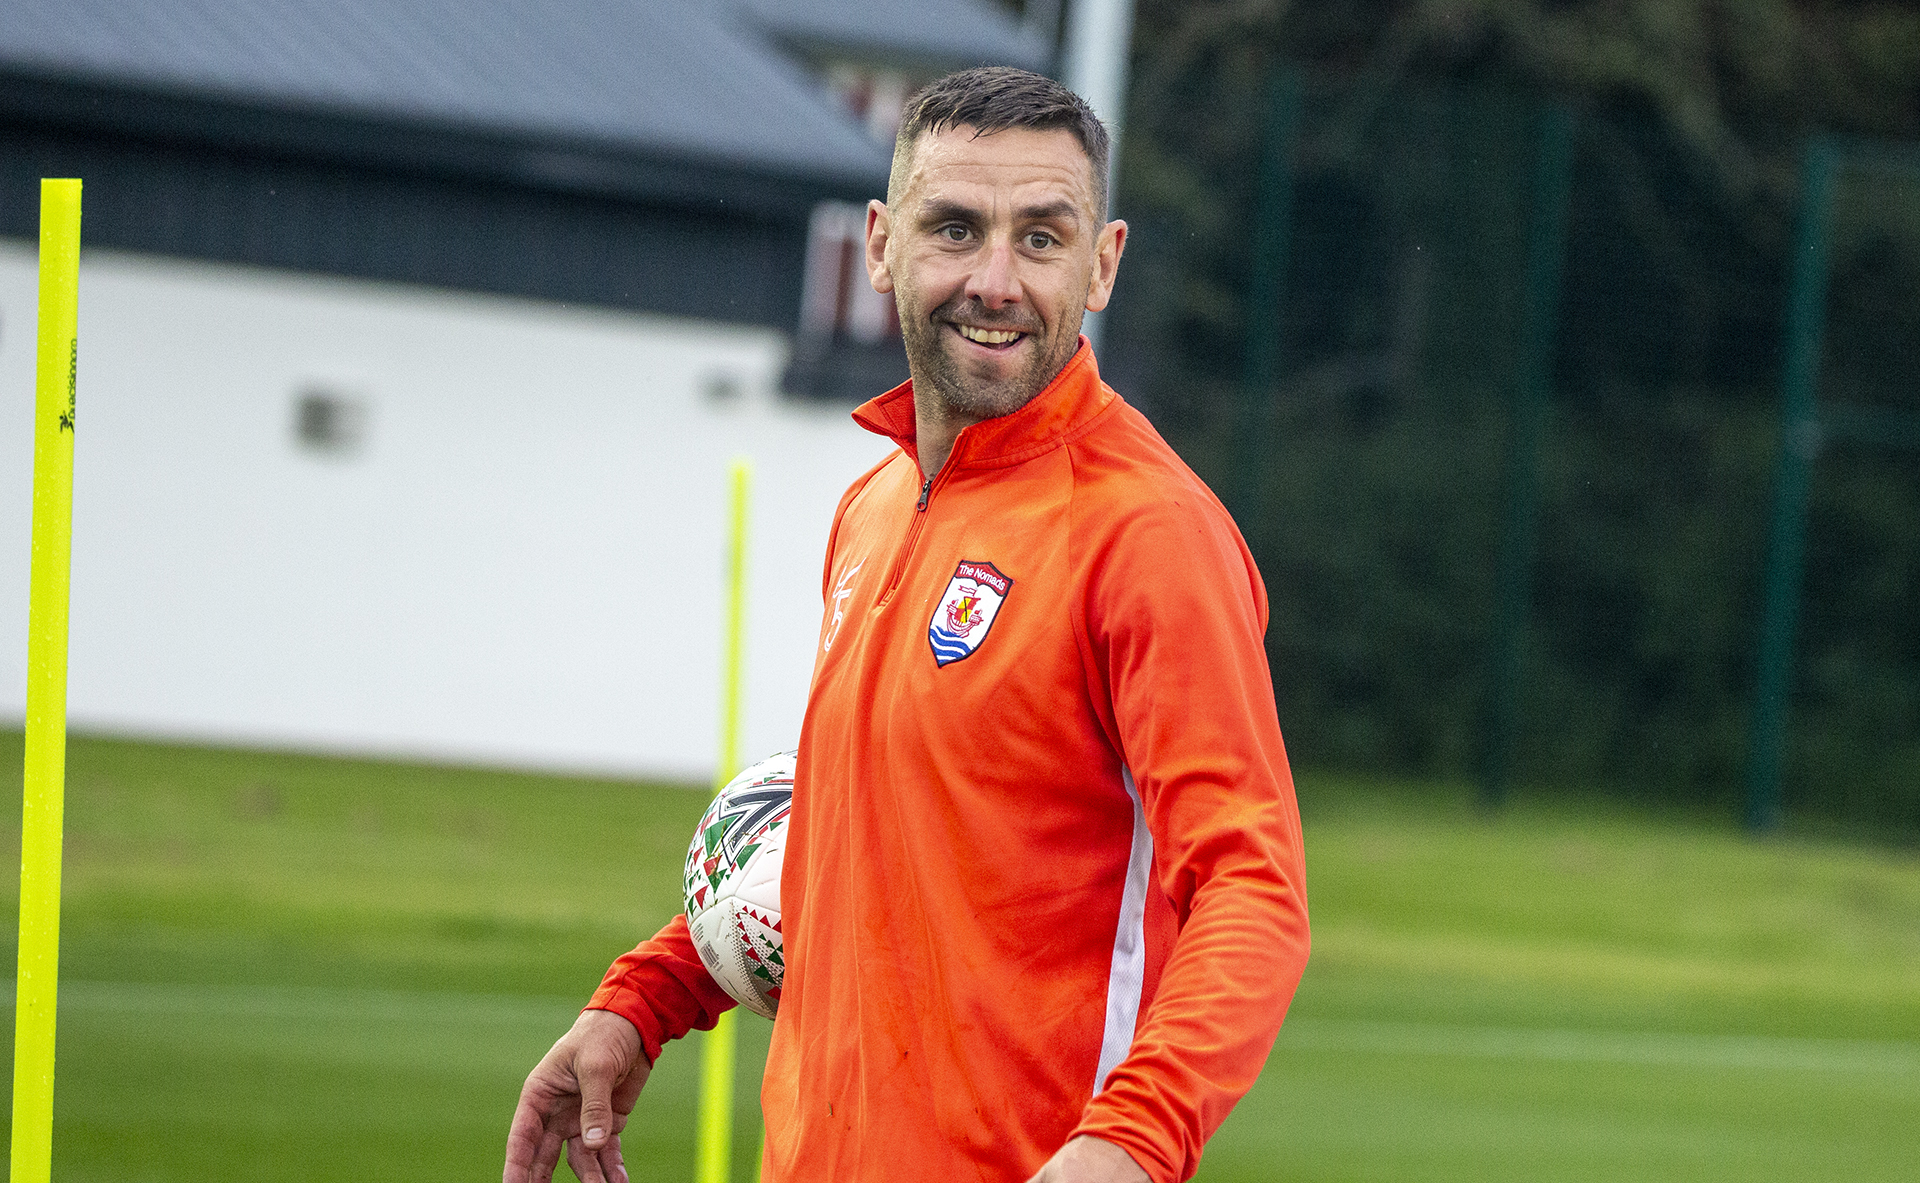 George Horan taking part in The Nomads� Champion�s League preparation training at Colliers Park